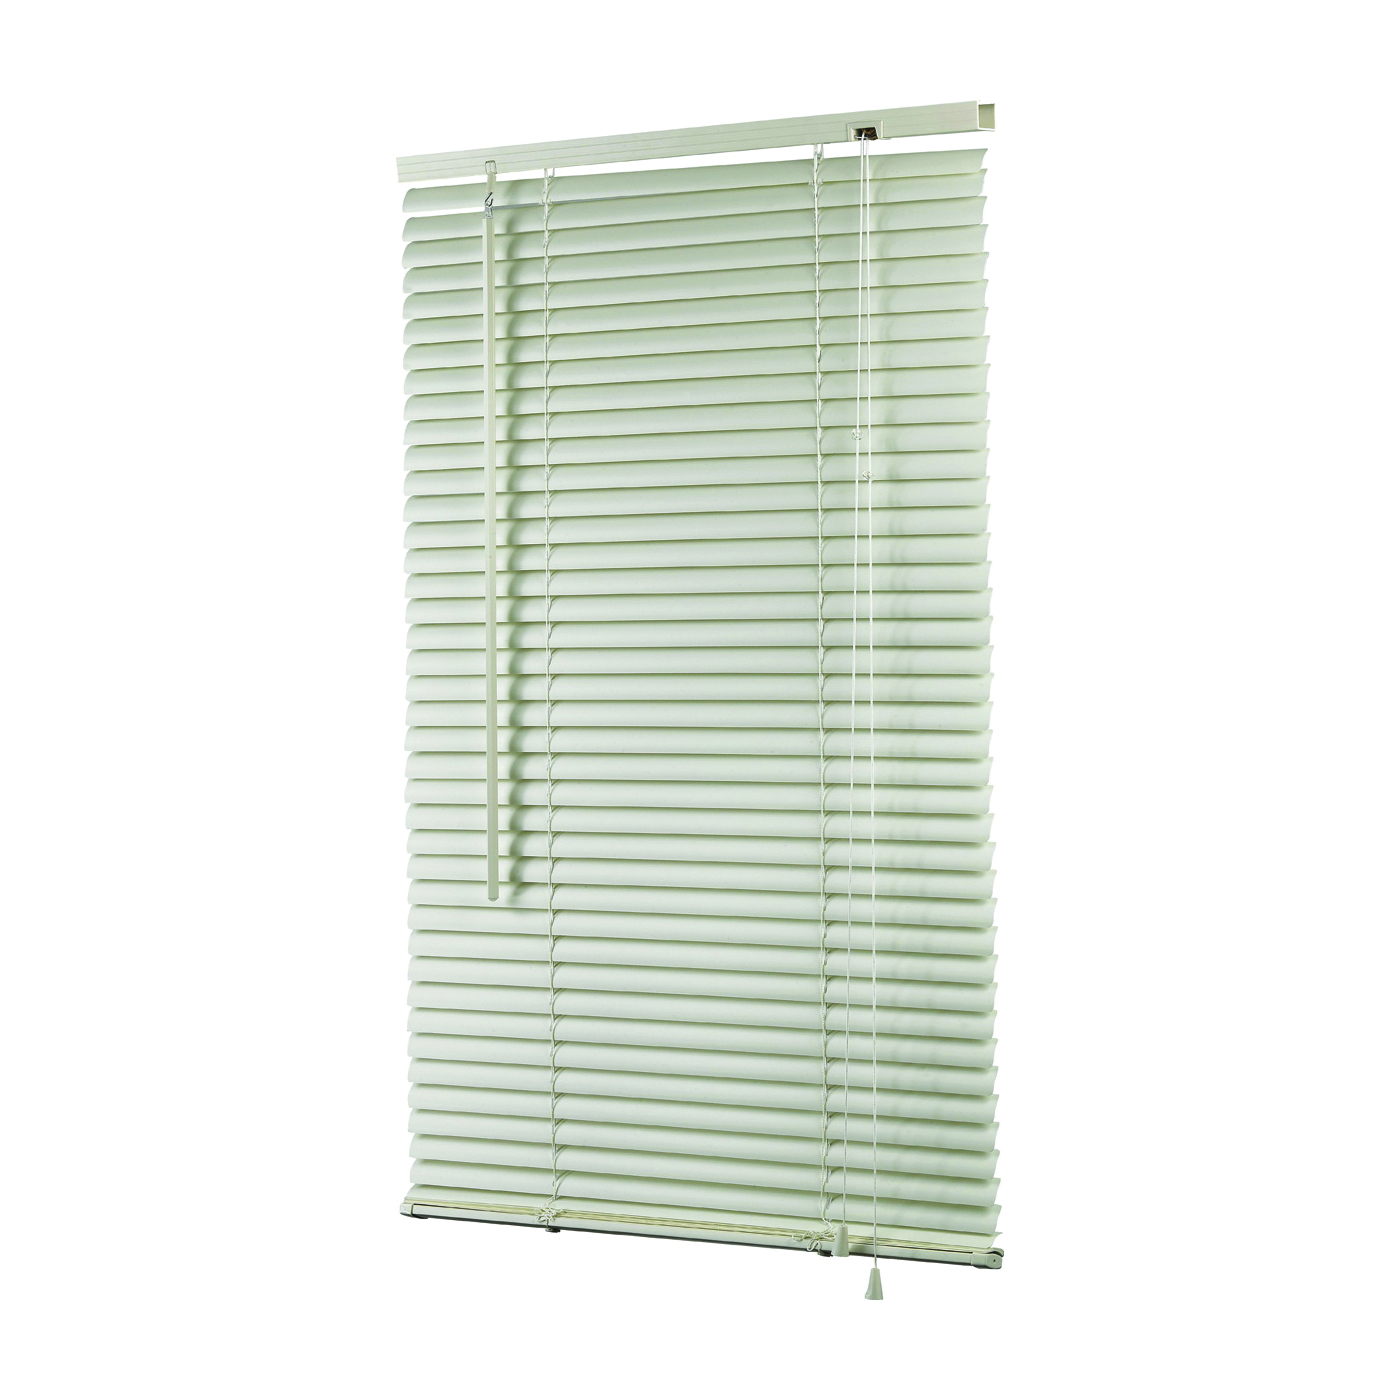 Picture of Simple Spaces MBV-43X64-A3L Mini-Blinds, 64 in L, 43 in W, Vinyl, Alabaster